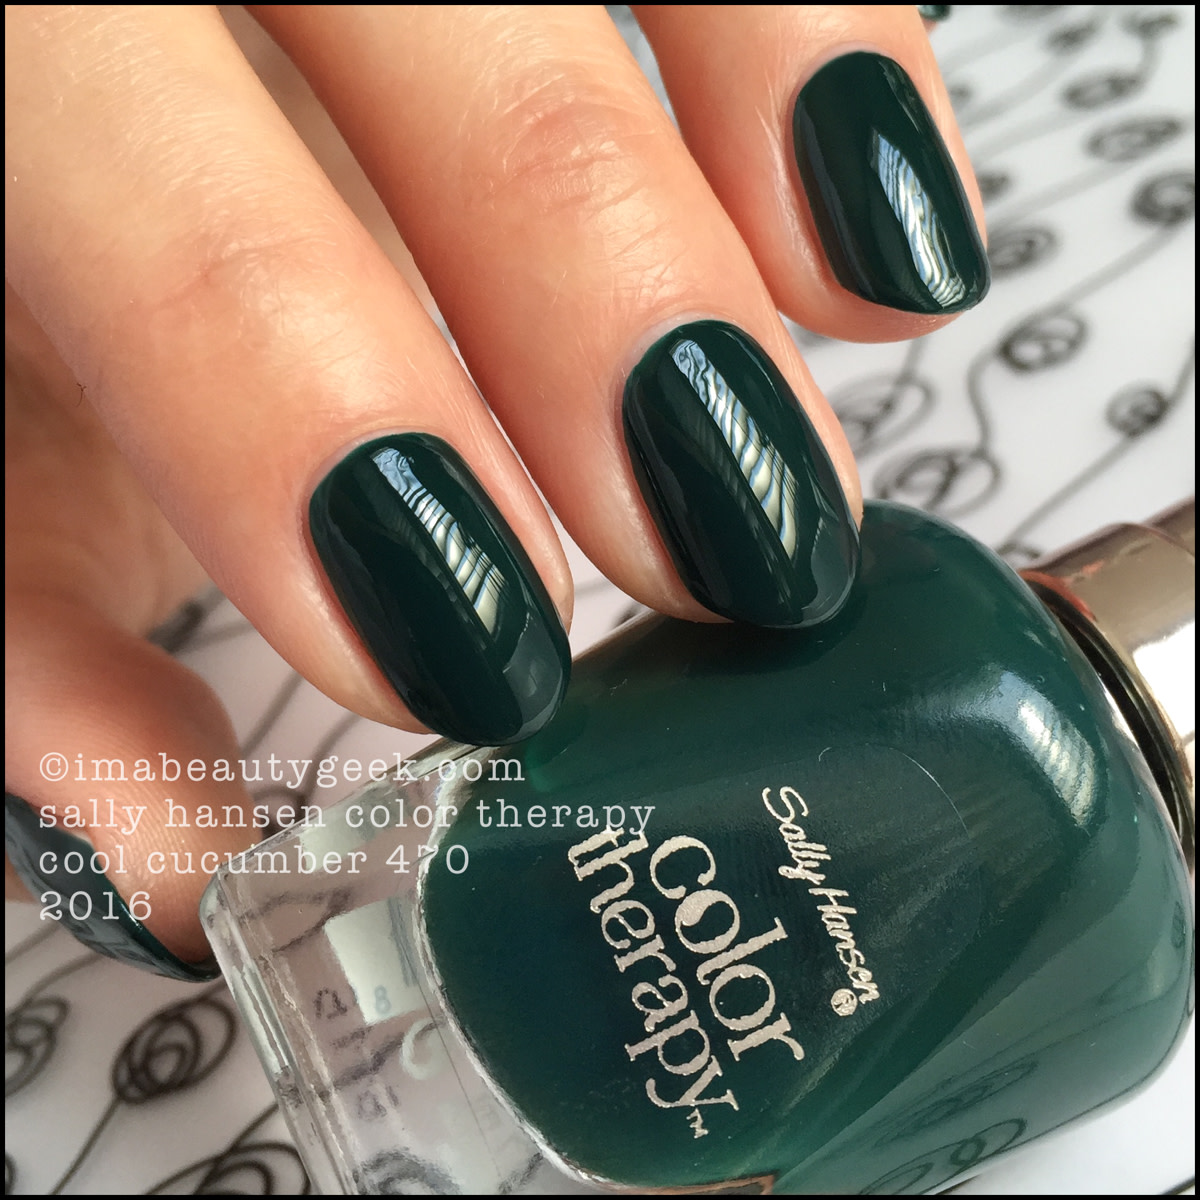 Sally Hansen Color Therapy Cool Cucumber 470_Sally Hansen Color Therapy Review Swatches